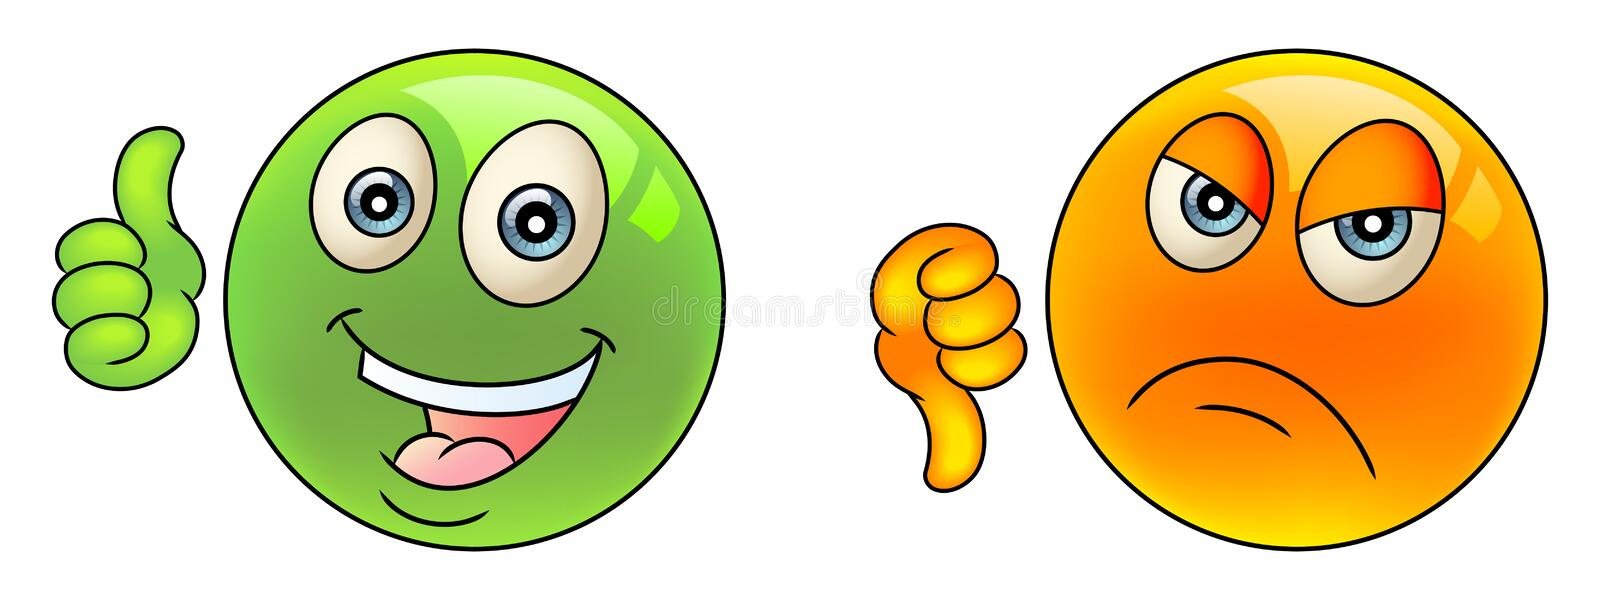 Thumbs up and down stock illustration